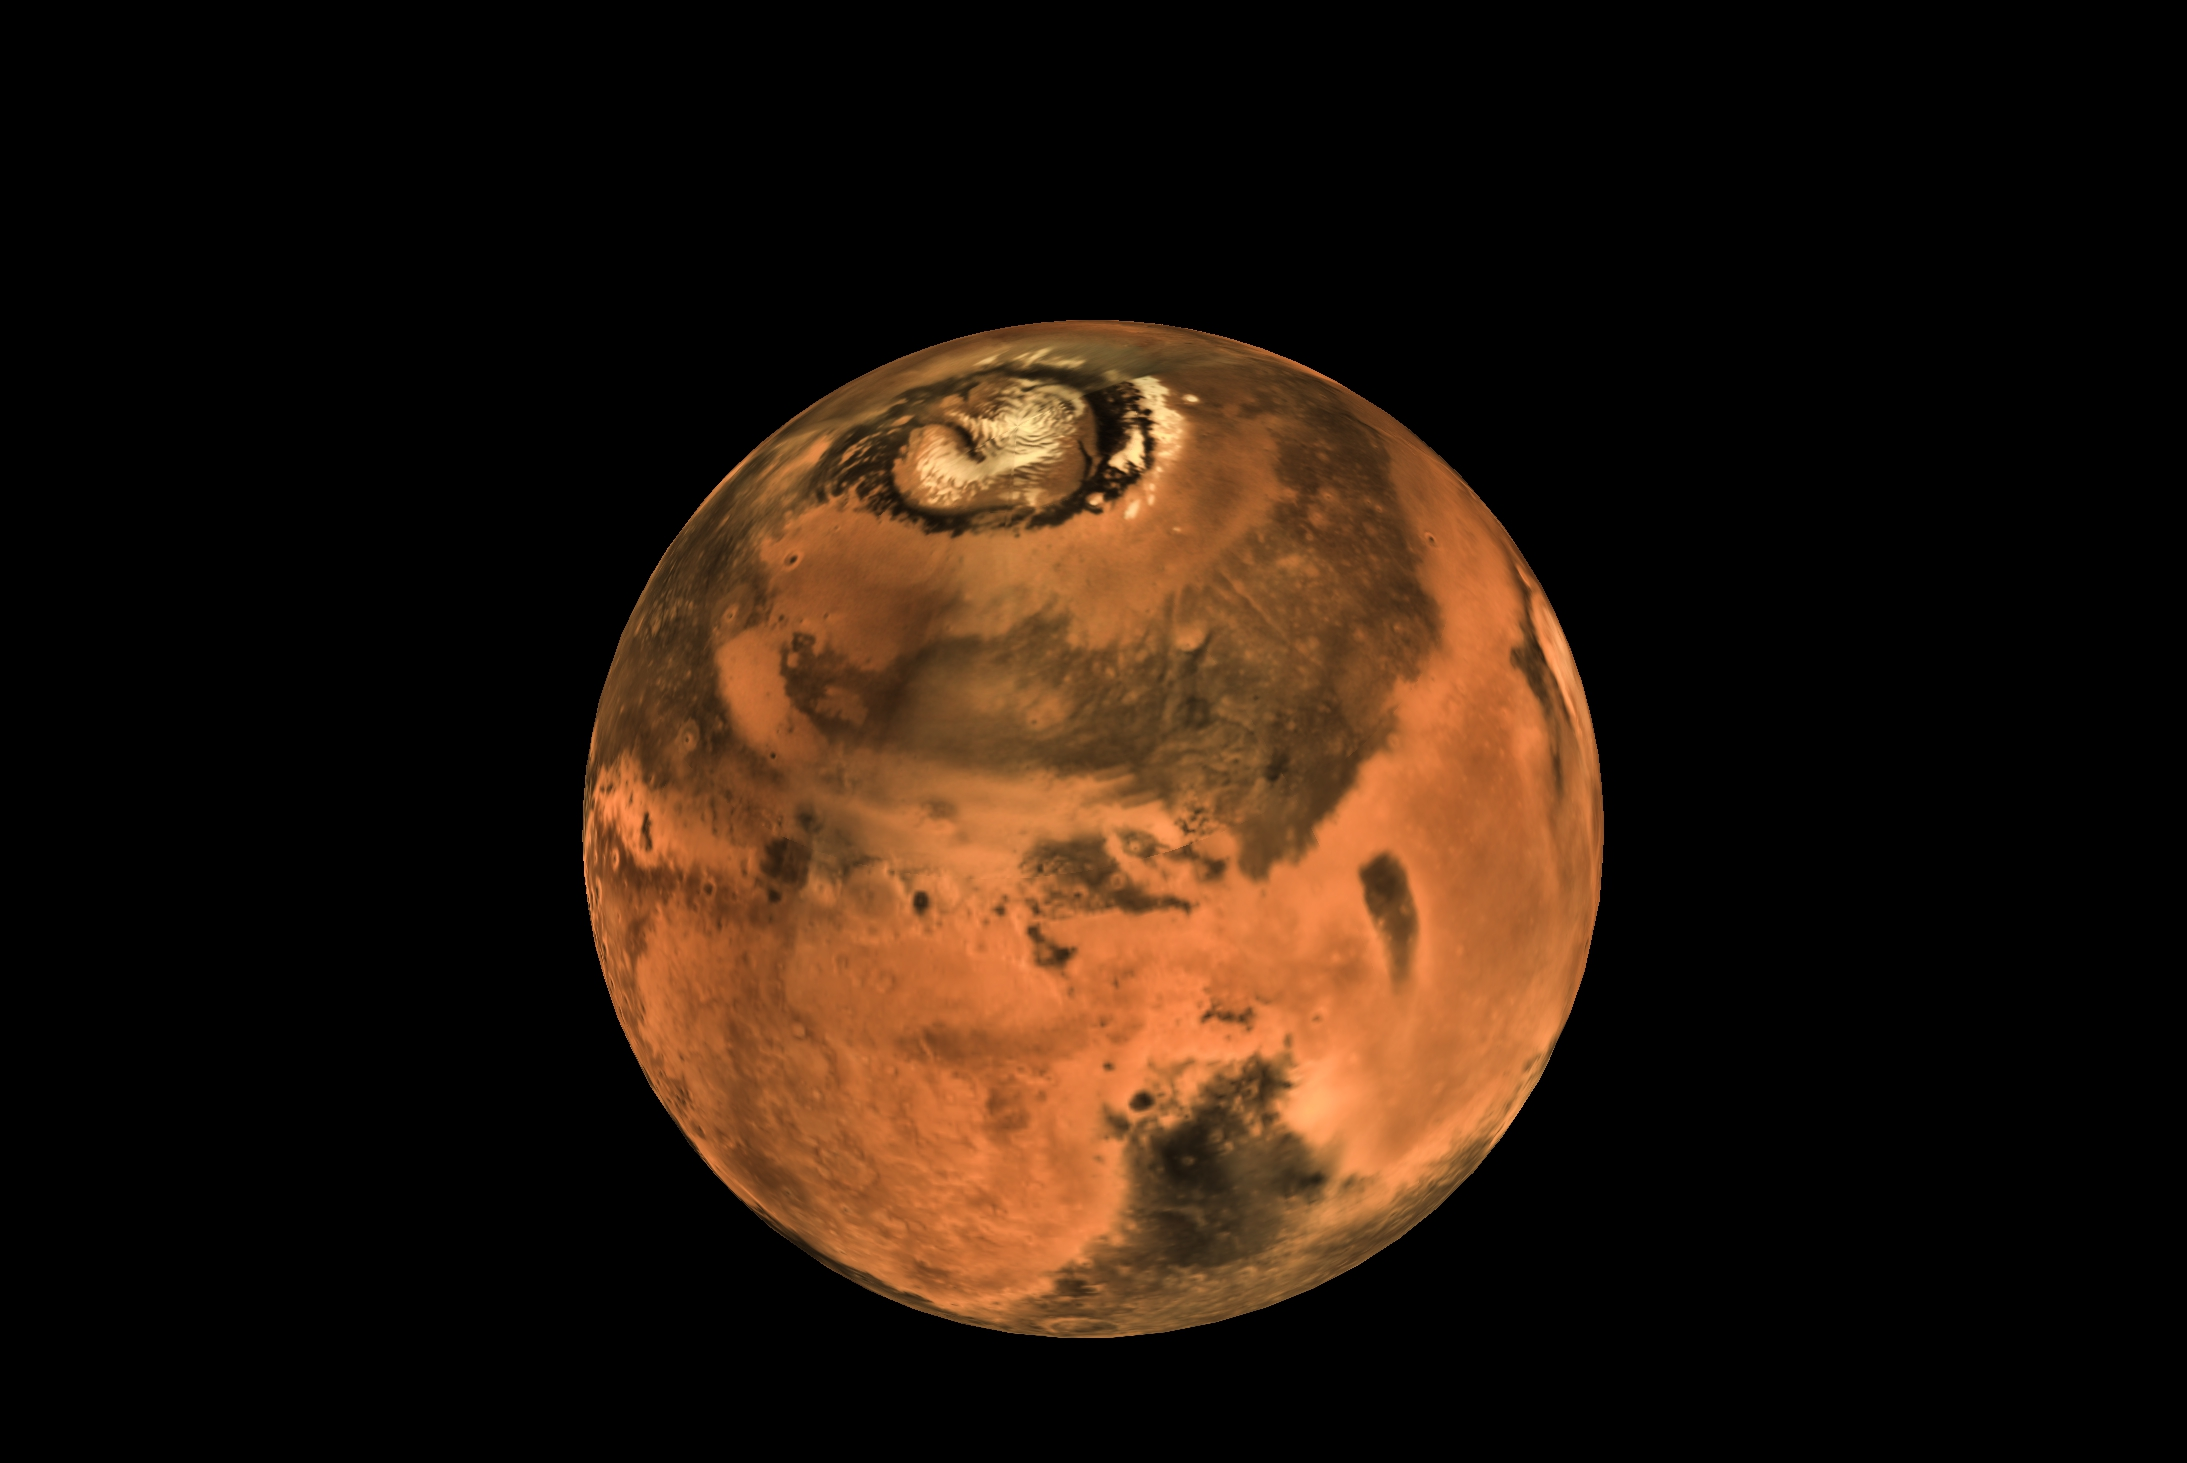 essay on mars planet in hindi Essay on the exploration of mars of the planet we call mars, the red planet there have been many successful attempts to get a glimpse of the interesting planet, and scientists are still working on a better solution to get there the first rover to explore mars was mariner 4, which arrived on november 28, 1964.